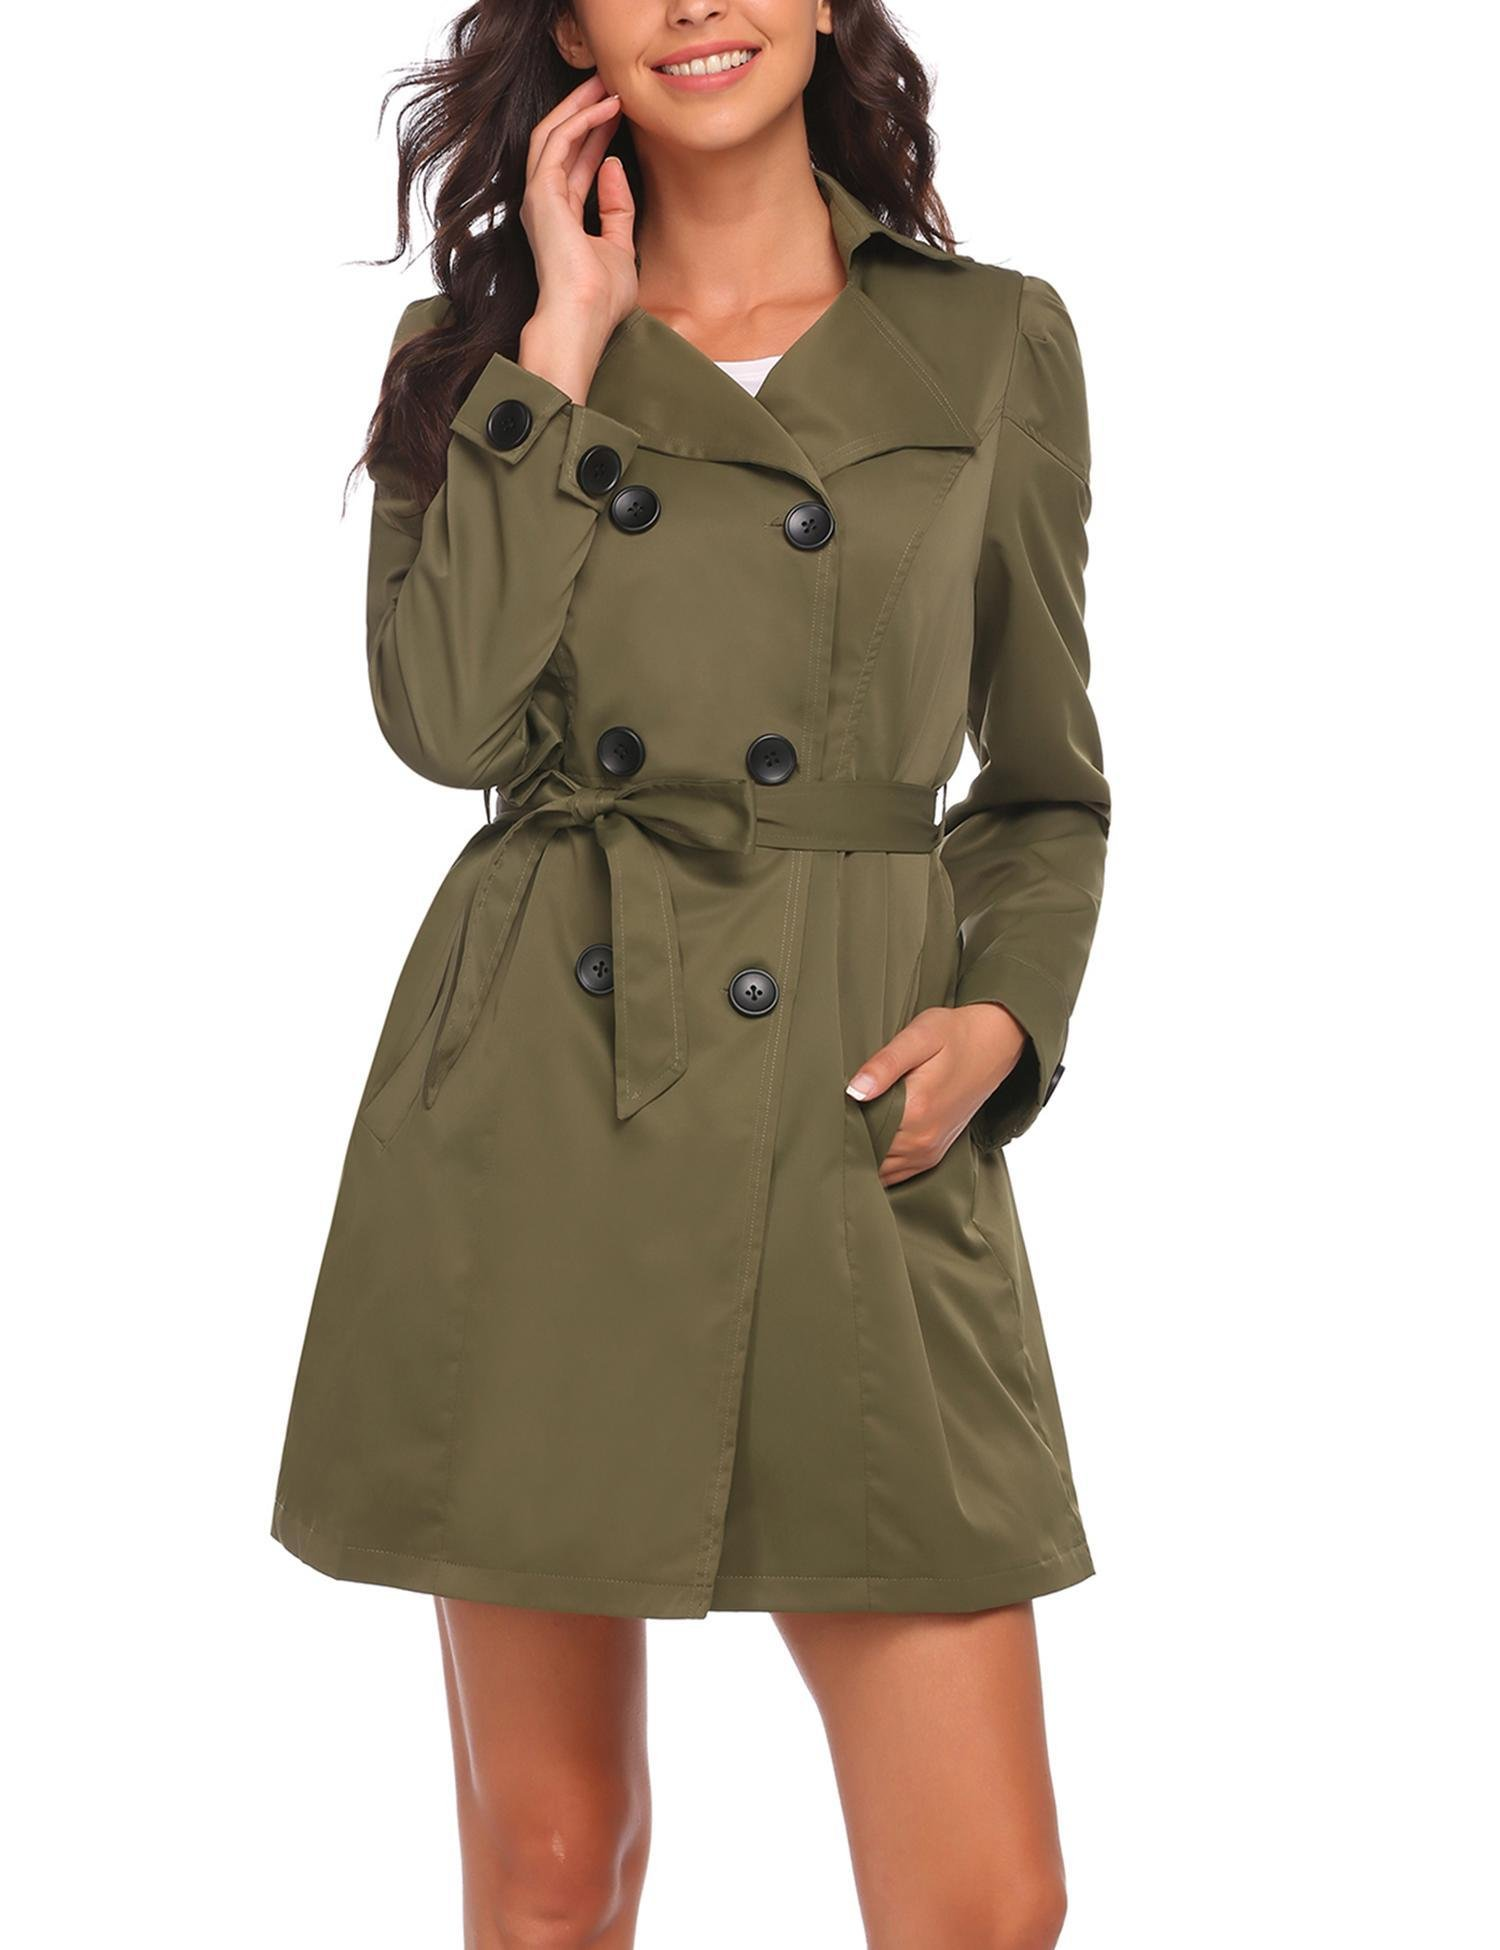 ELESOL Women's Trench Coat Long Double Breasted Jacket with Belts